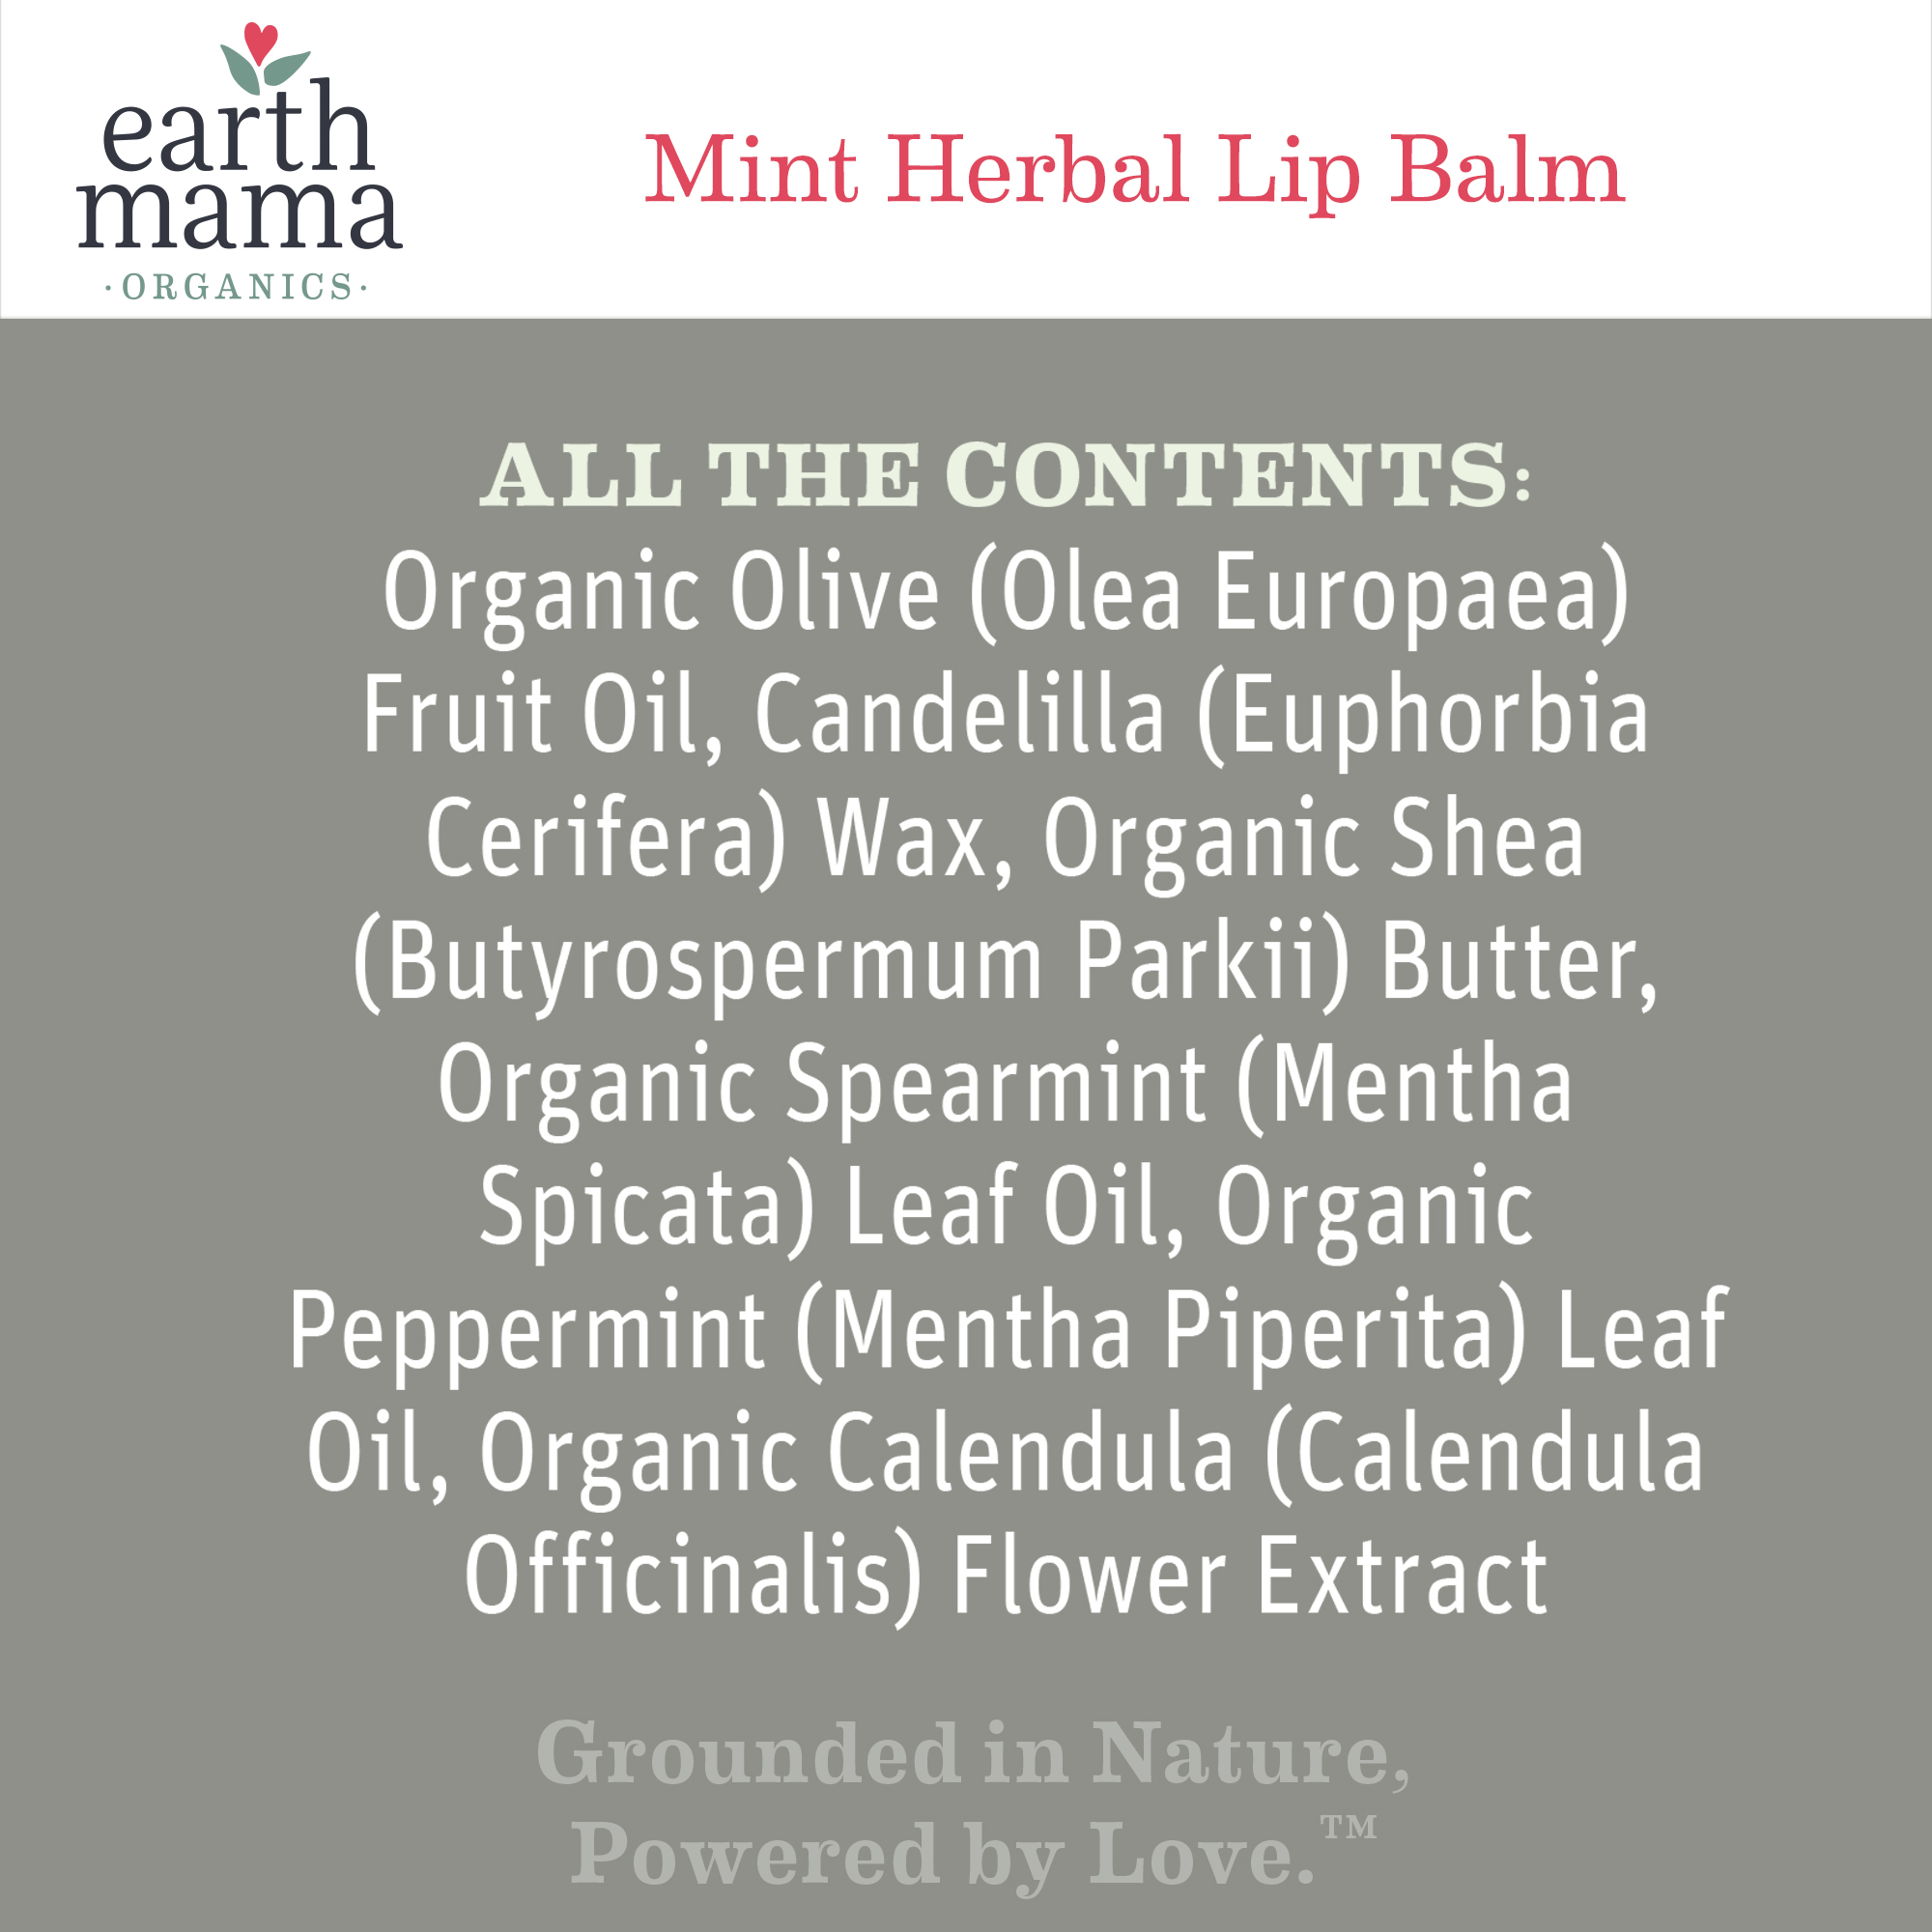 earth-mama-angel-baby-lip-balm-mint-ingredients.jpg